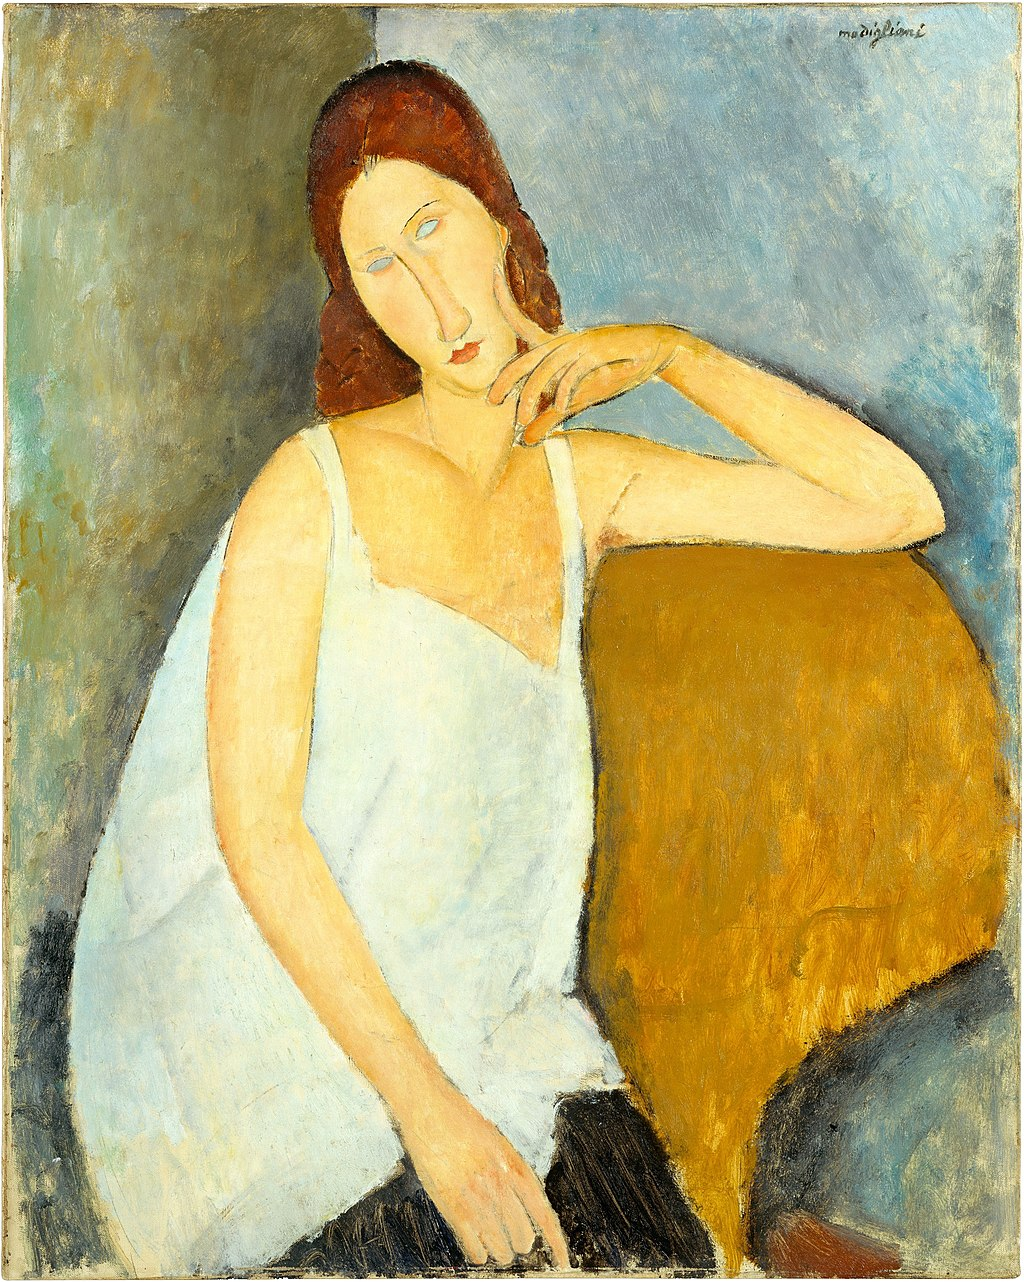 """Jeanne Hébuterne"" by Amedeo Modigliani"